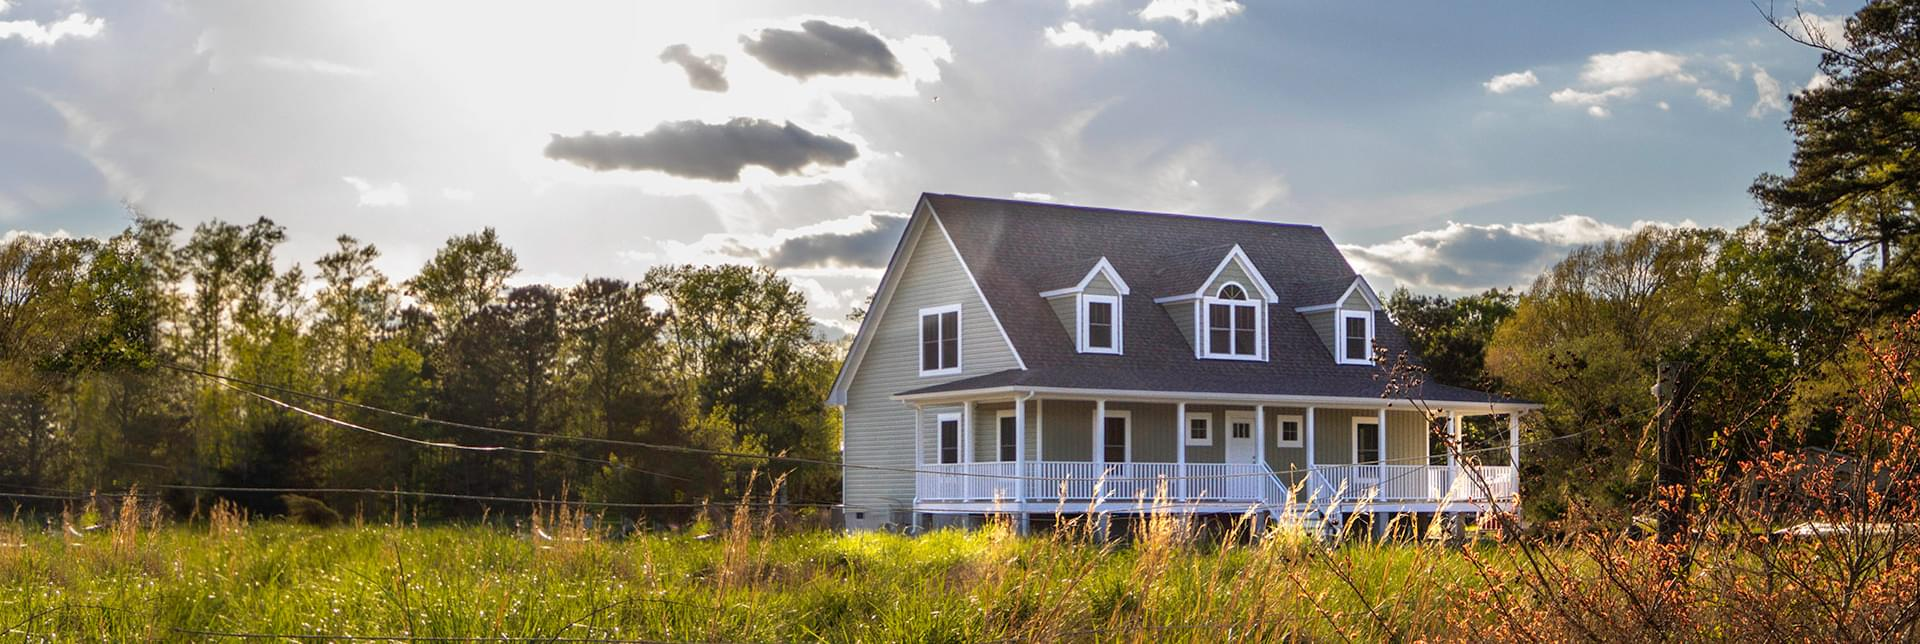 New Homes in Craven County NC